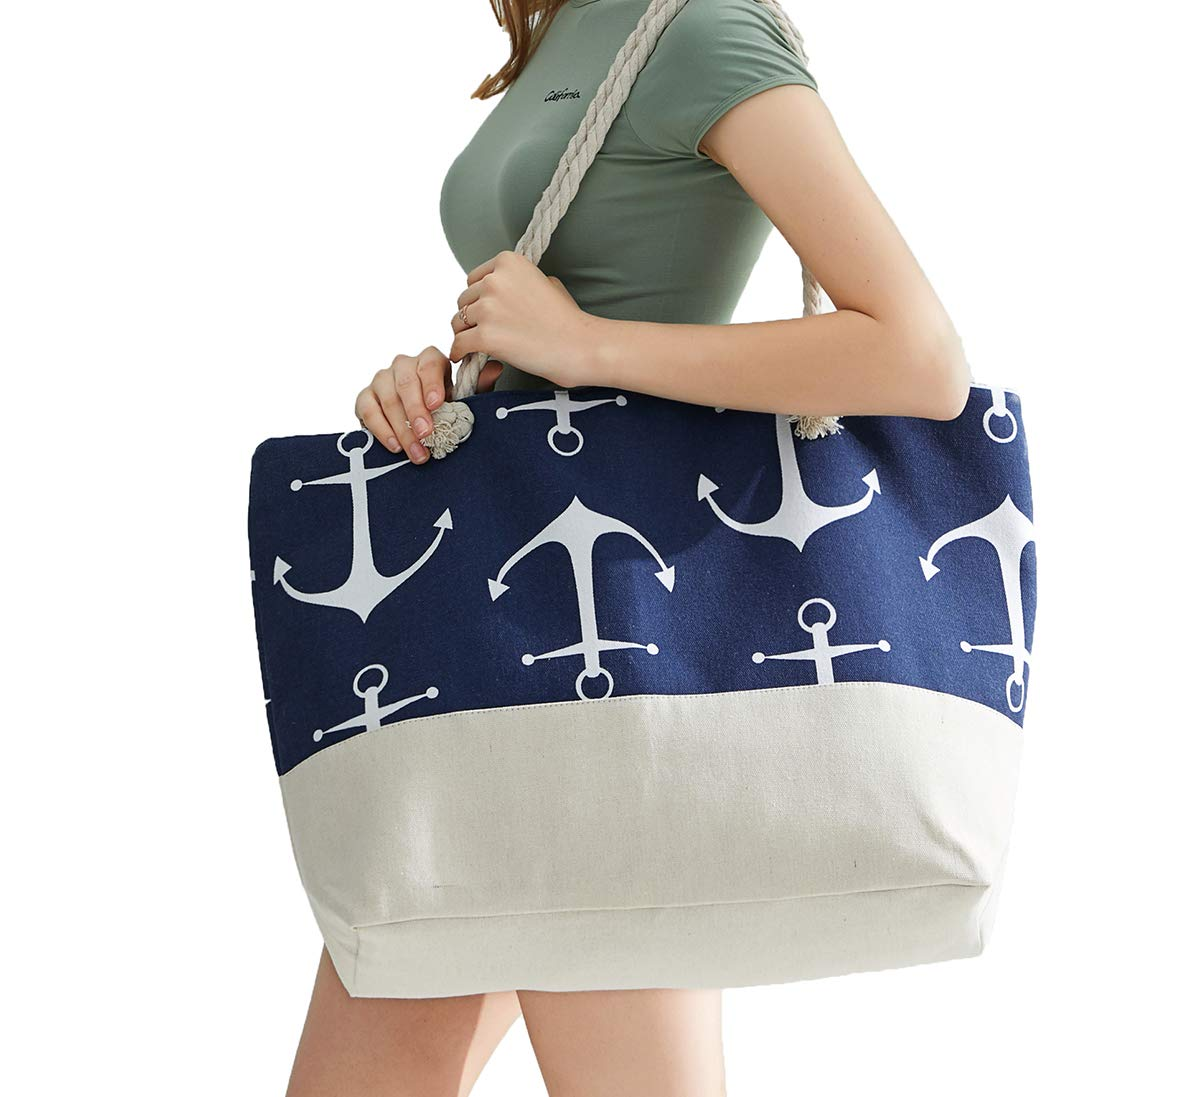 OZCHIN Beach Bag Large Tote Bag for Women Great Gifts for Women (XL)